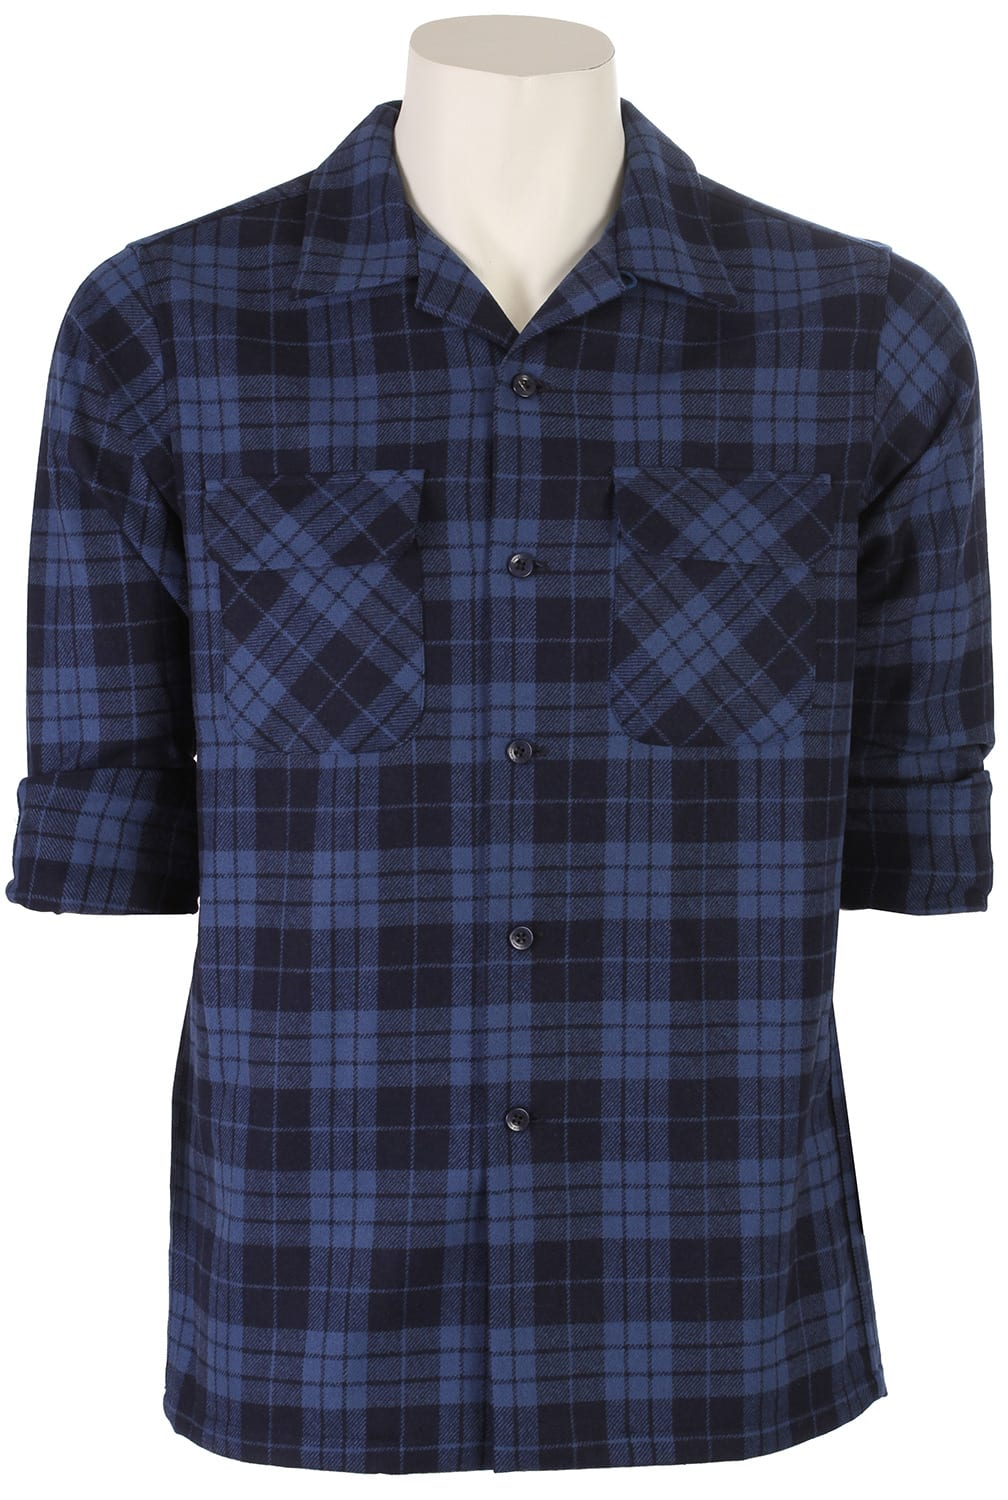 on sale pendleton board fitted shirt up to 55 off